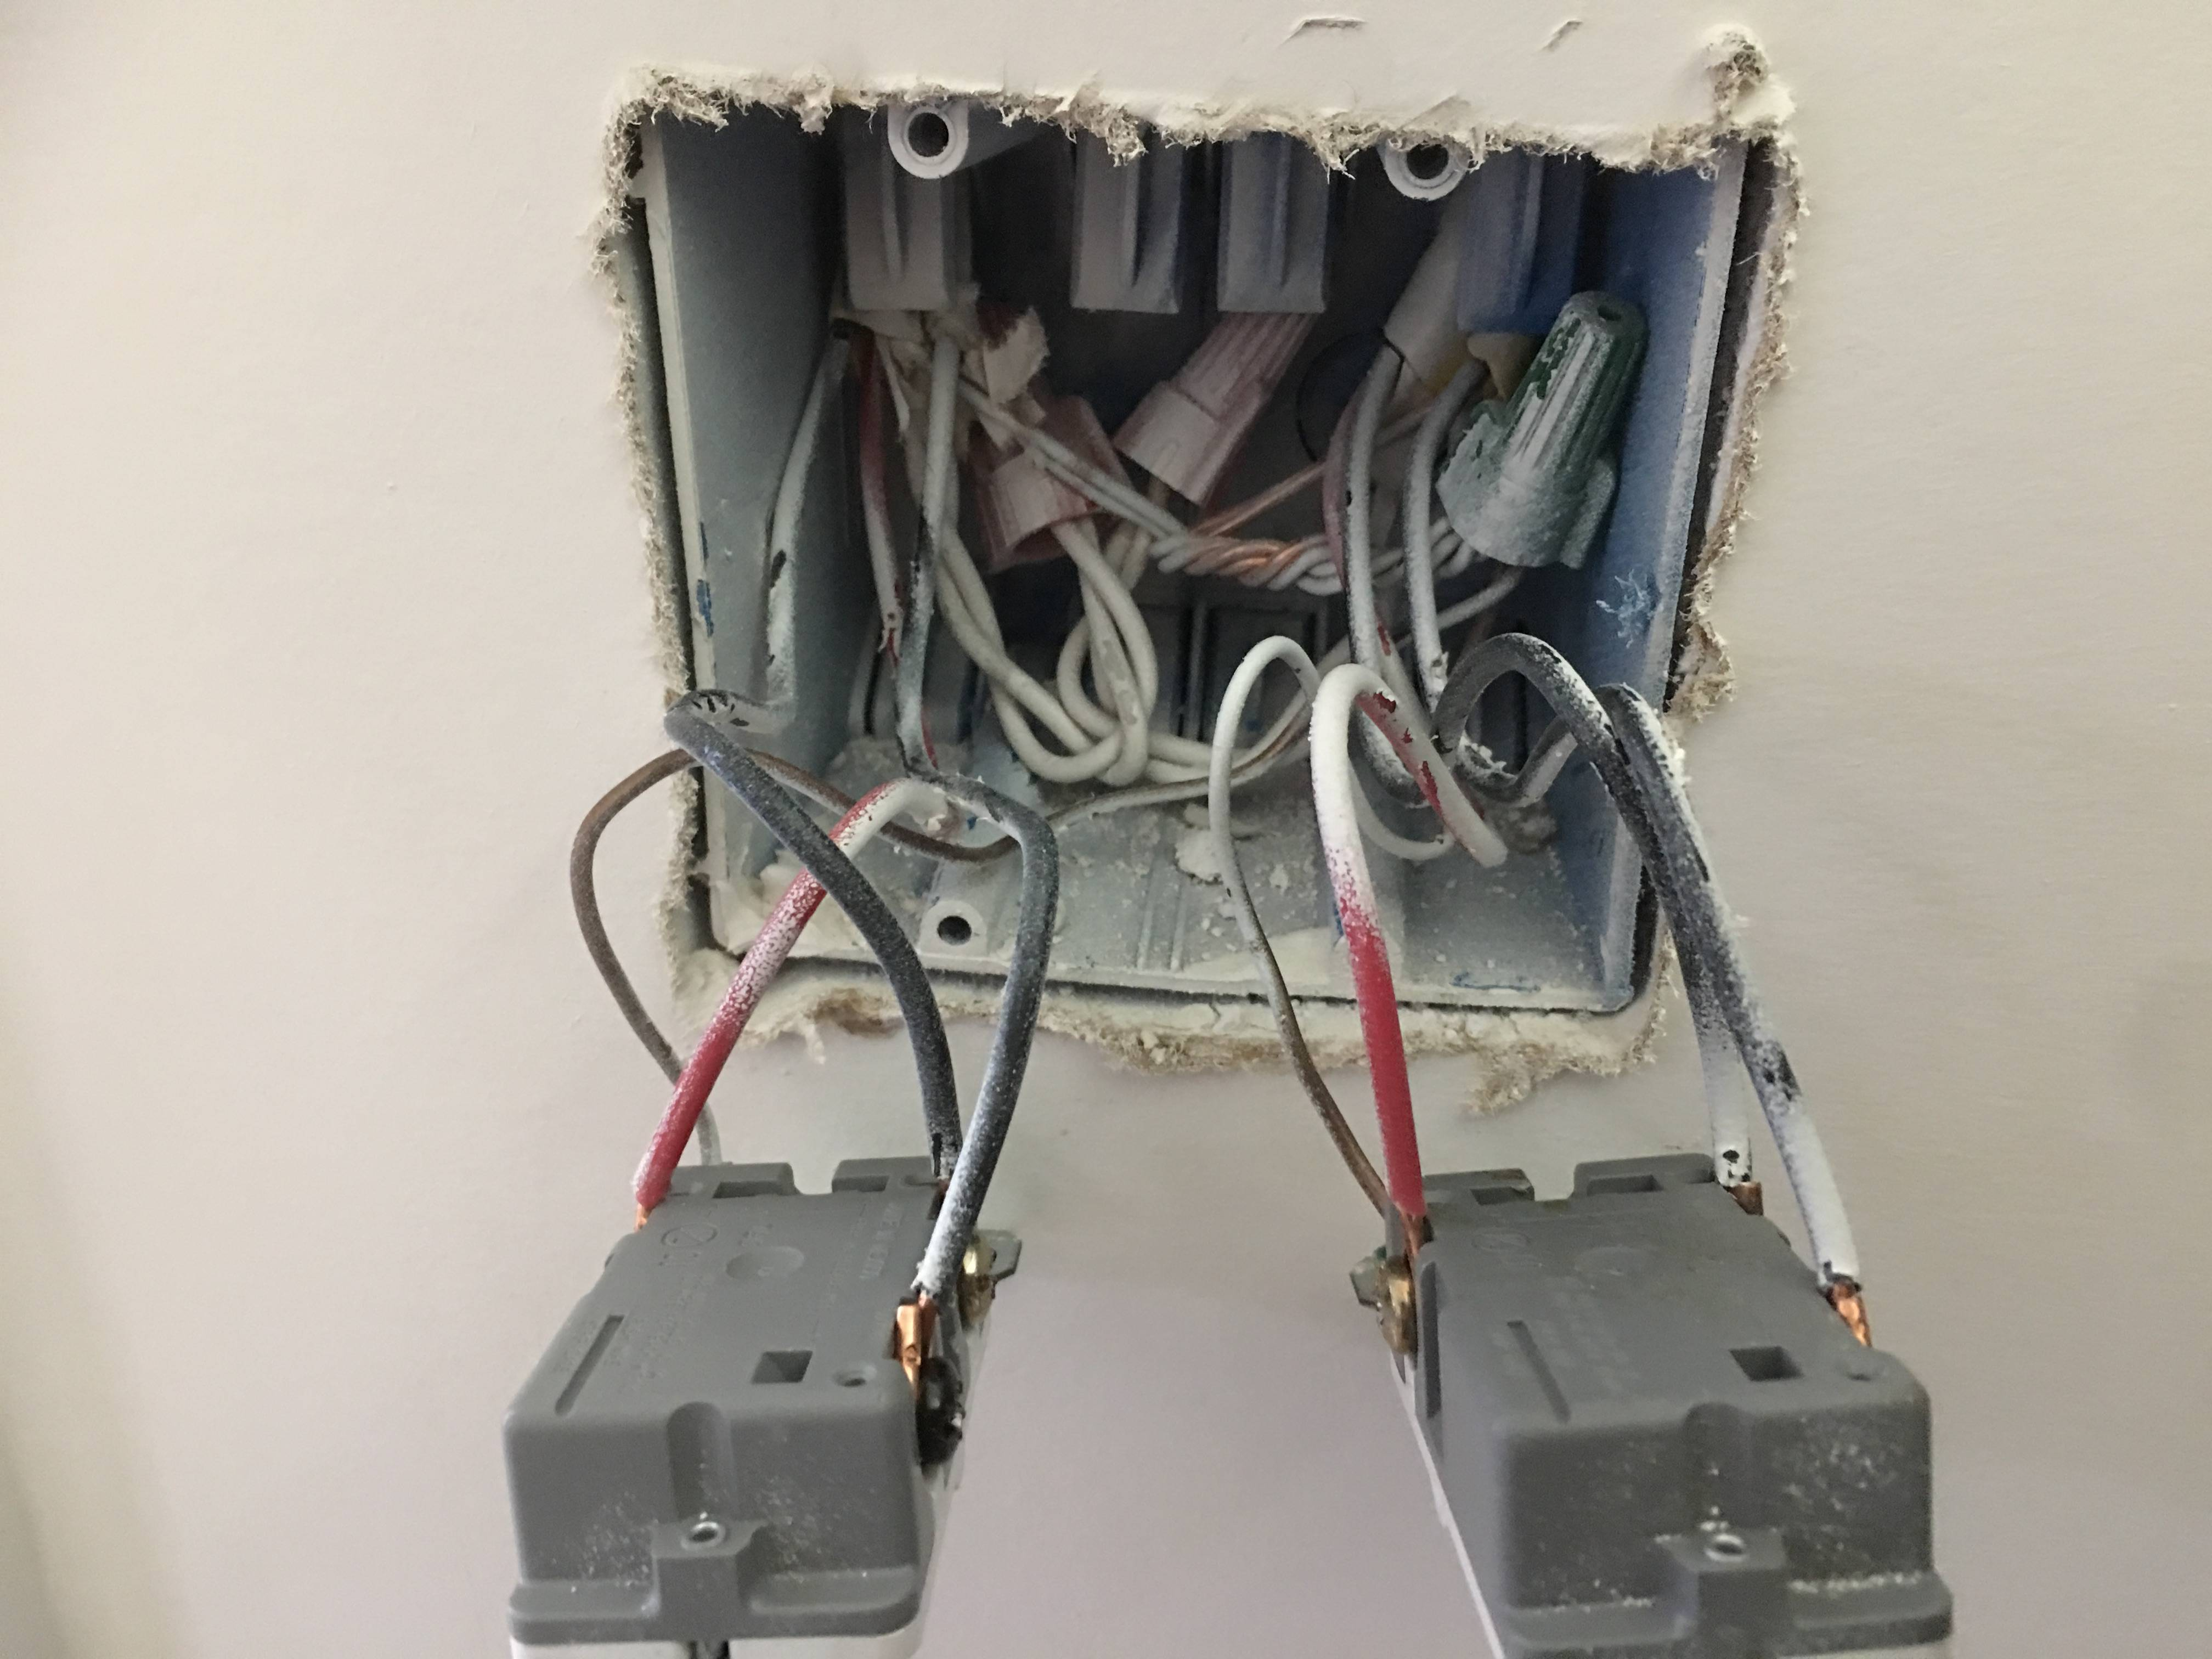 3 Way Switch Wired Wrong